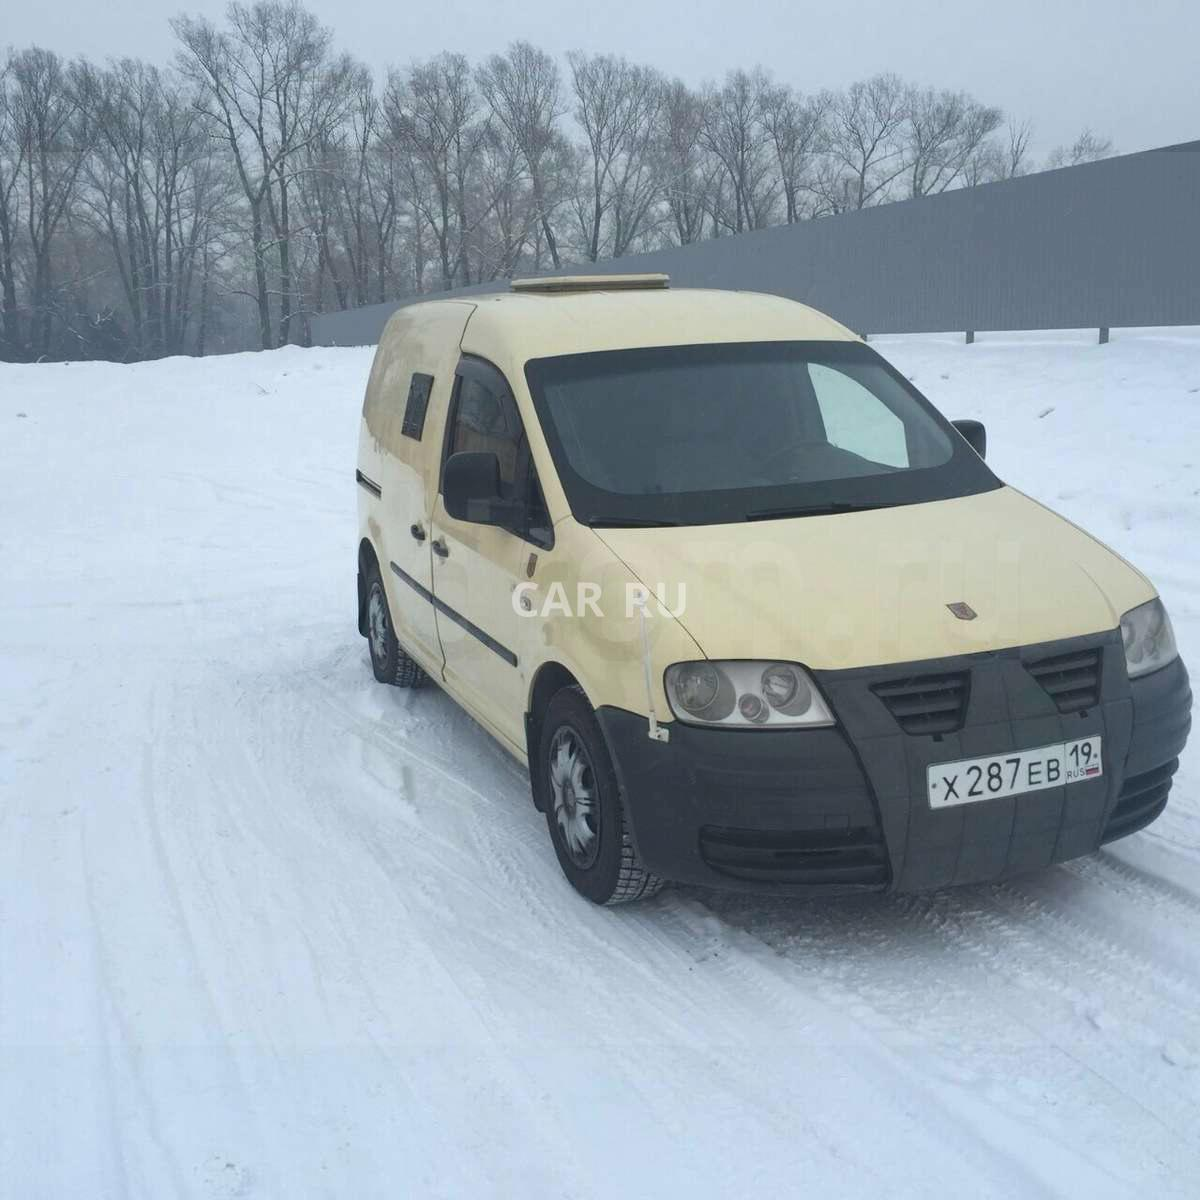 Volkswagen Caddy, Абакан